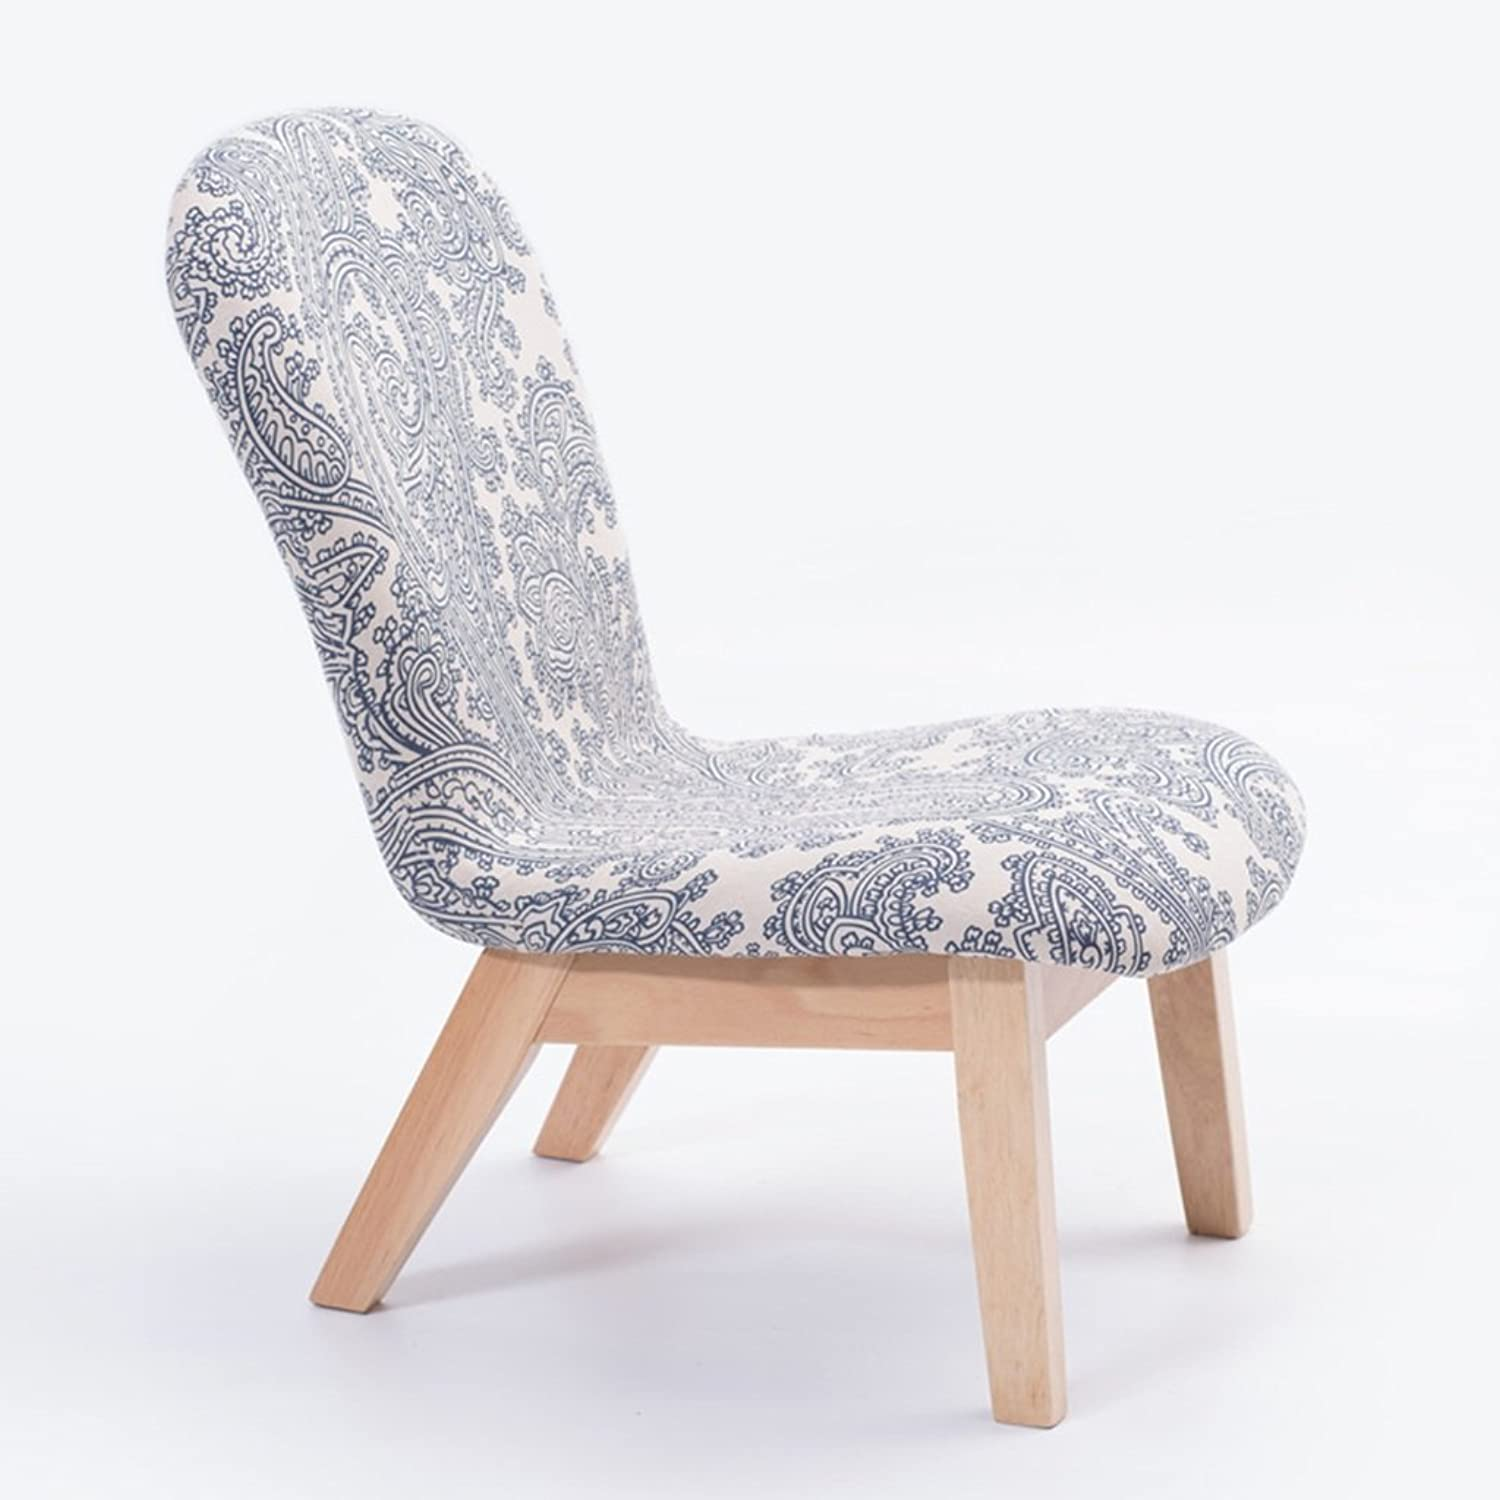 NNN- Pattern Leisure Solid Wood Stool Fabric Backrest Chair Simple Try On shoes Soft Stool Small Sofa Stool Home (Size   A)